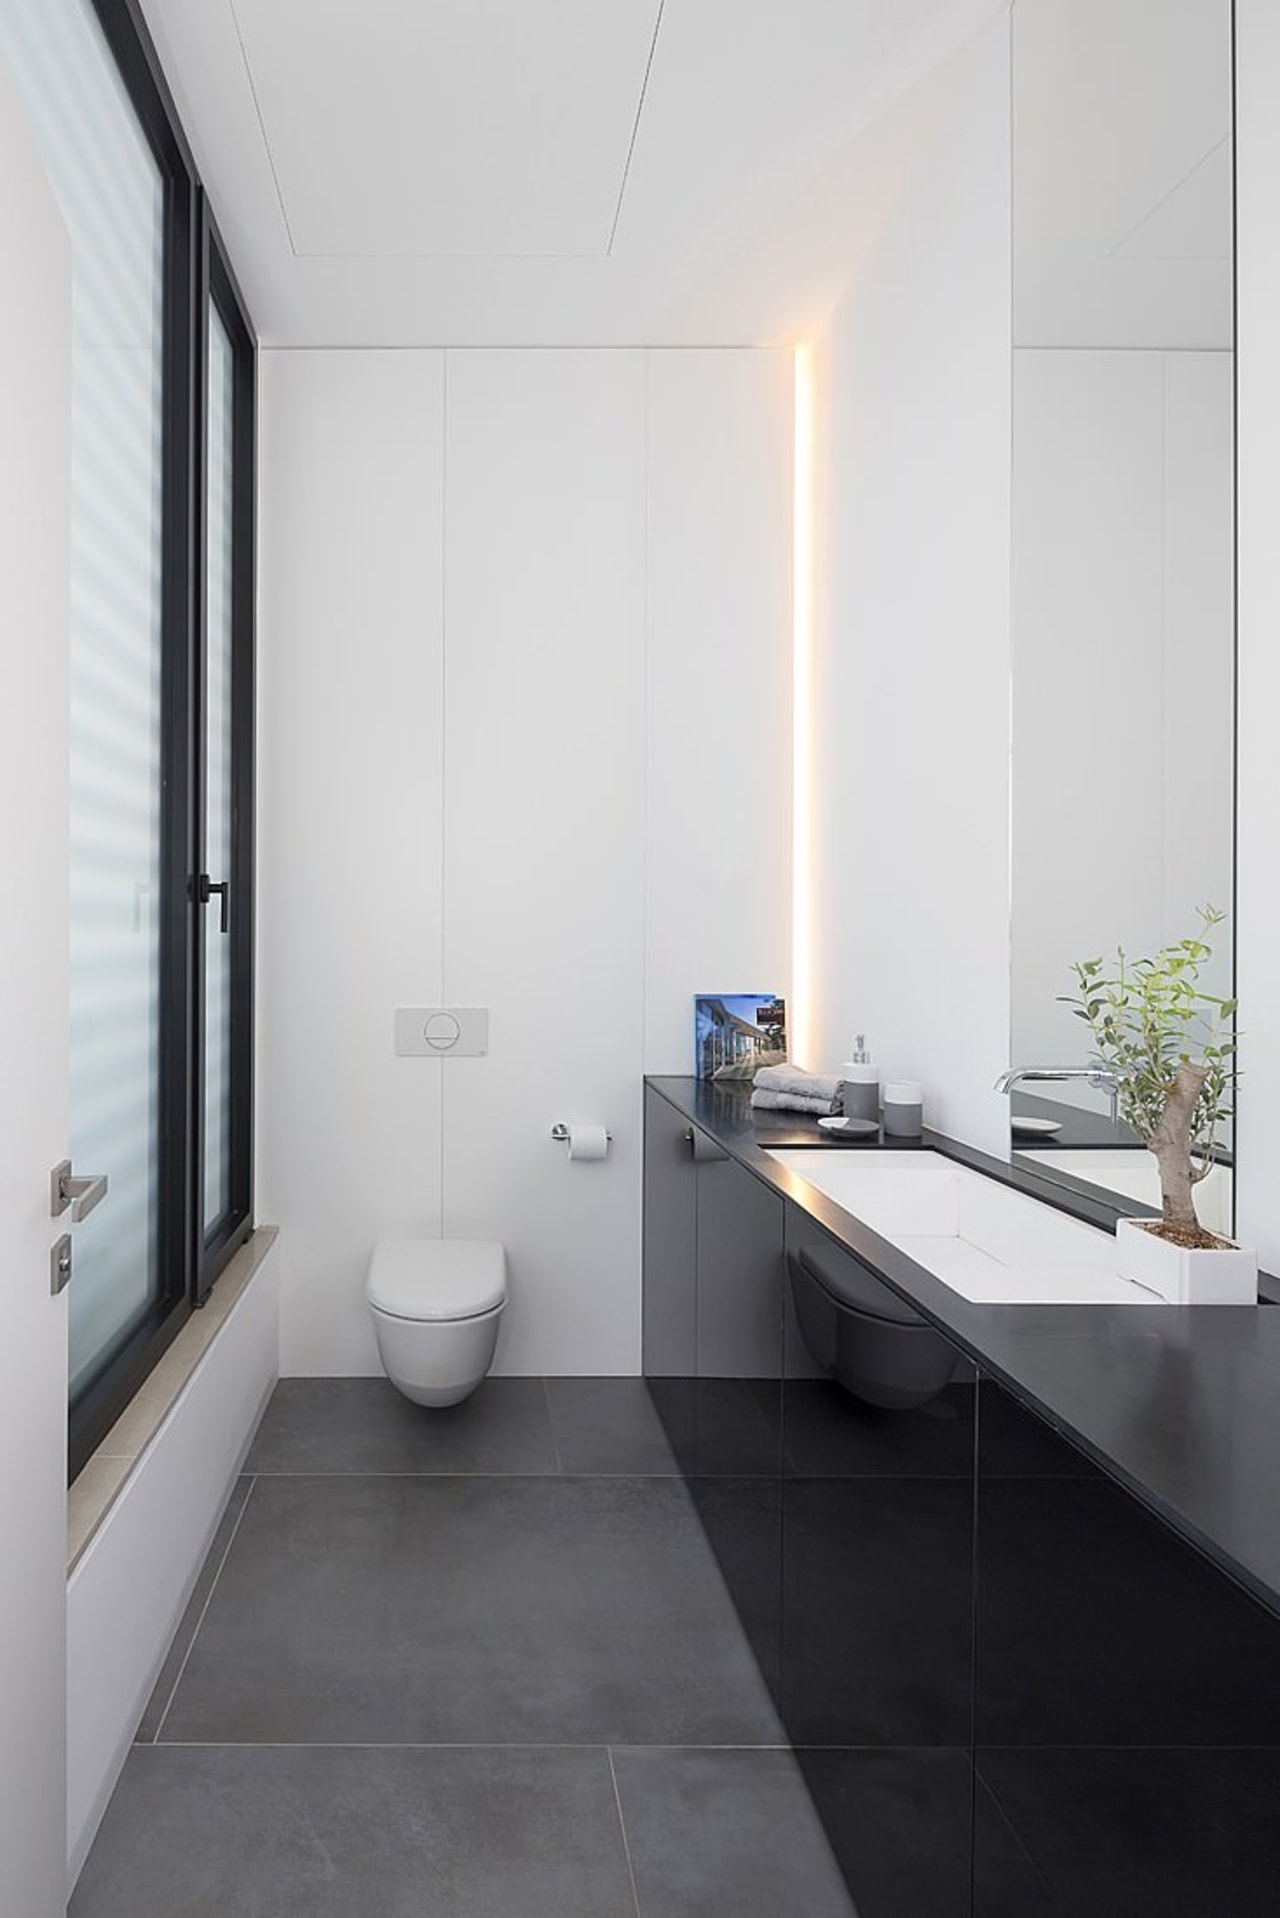 Architect: Shachar-Rozenfeld architectsPhotography by Shai Epstein architecture, bathroom, daylighting, floor, house, interior design, product design, room, sink, white